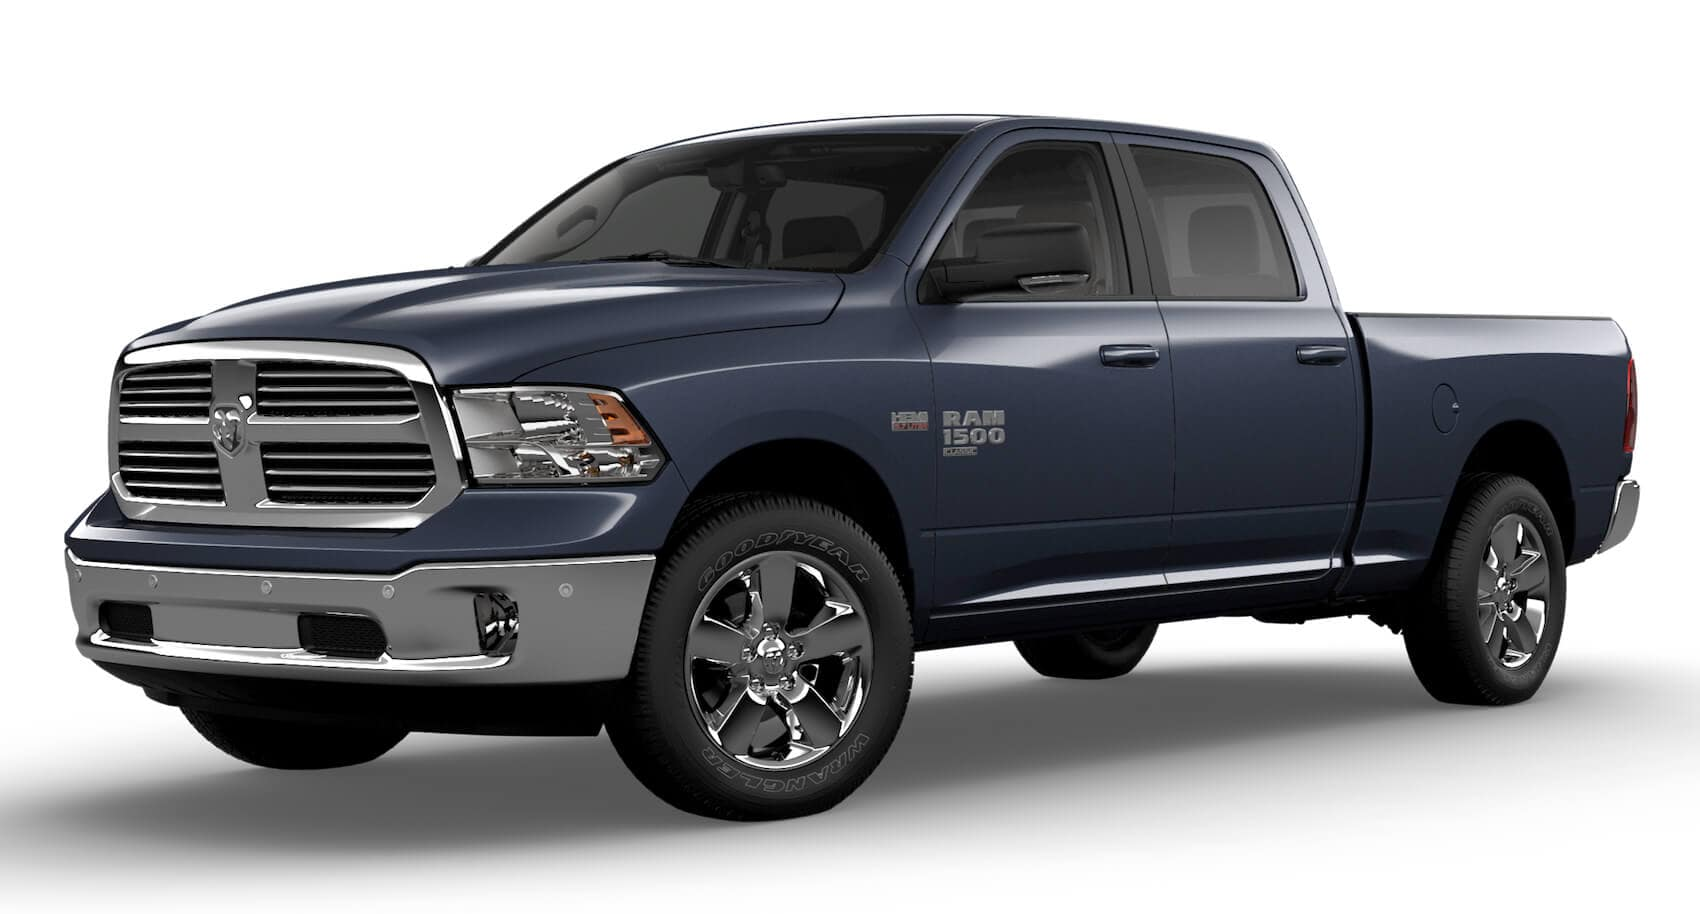 Ram 1500 vs Ford F-150 comparison Worcester, MA